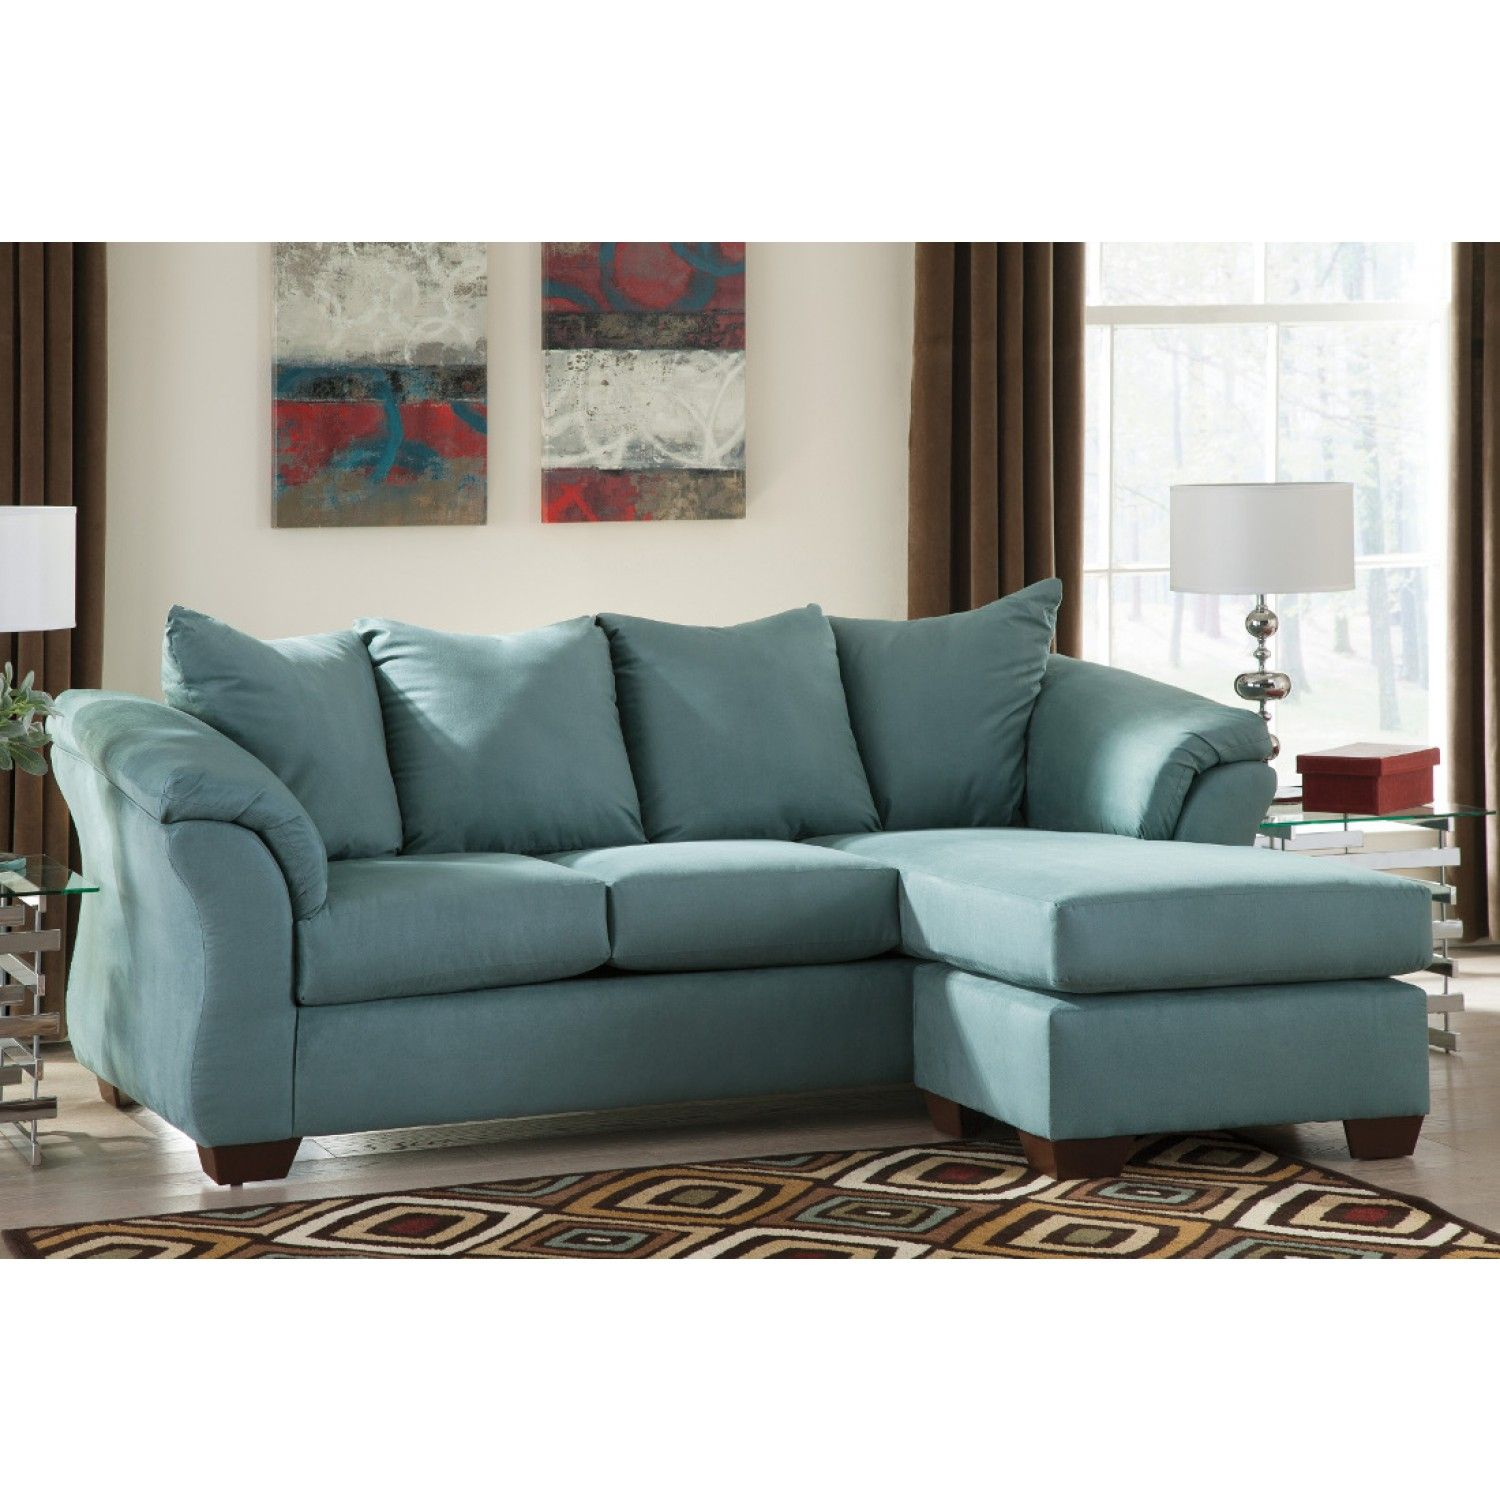 Superb Ashley Furniture Darcy Sofa Chaise In Sky Living Room Cjindustries Chair Design For Home Cjindustriesco